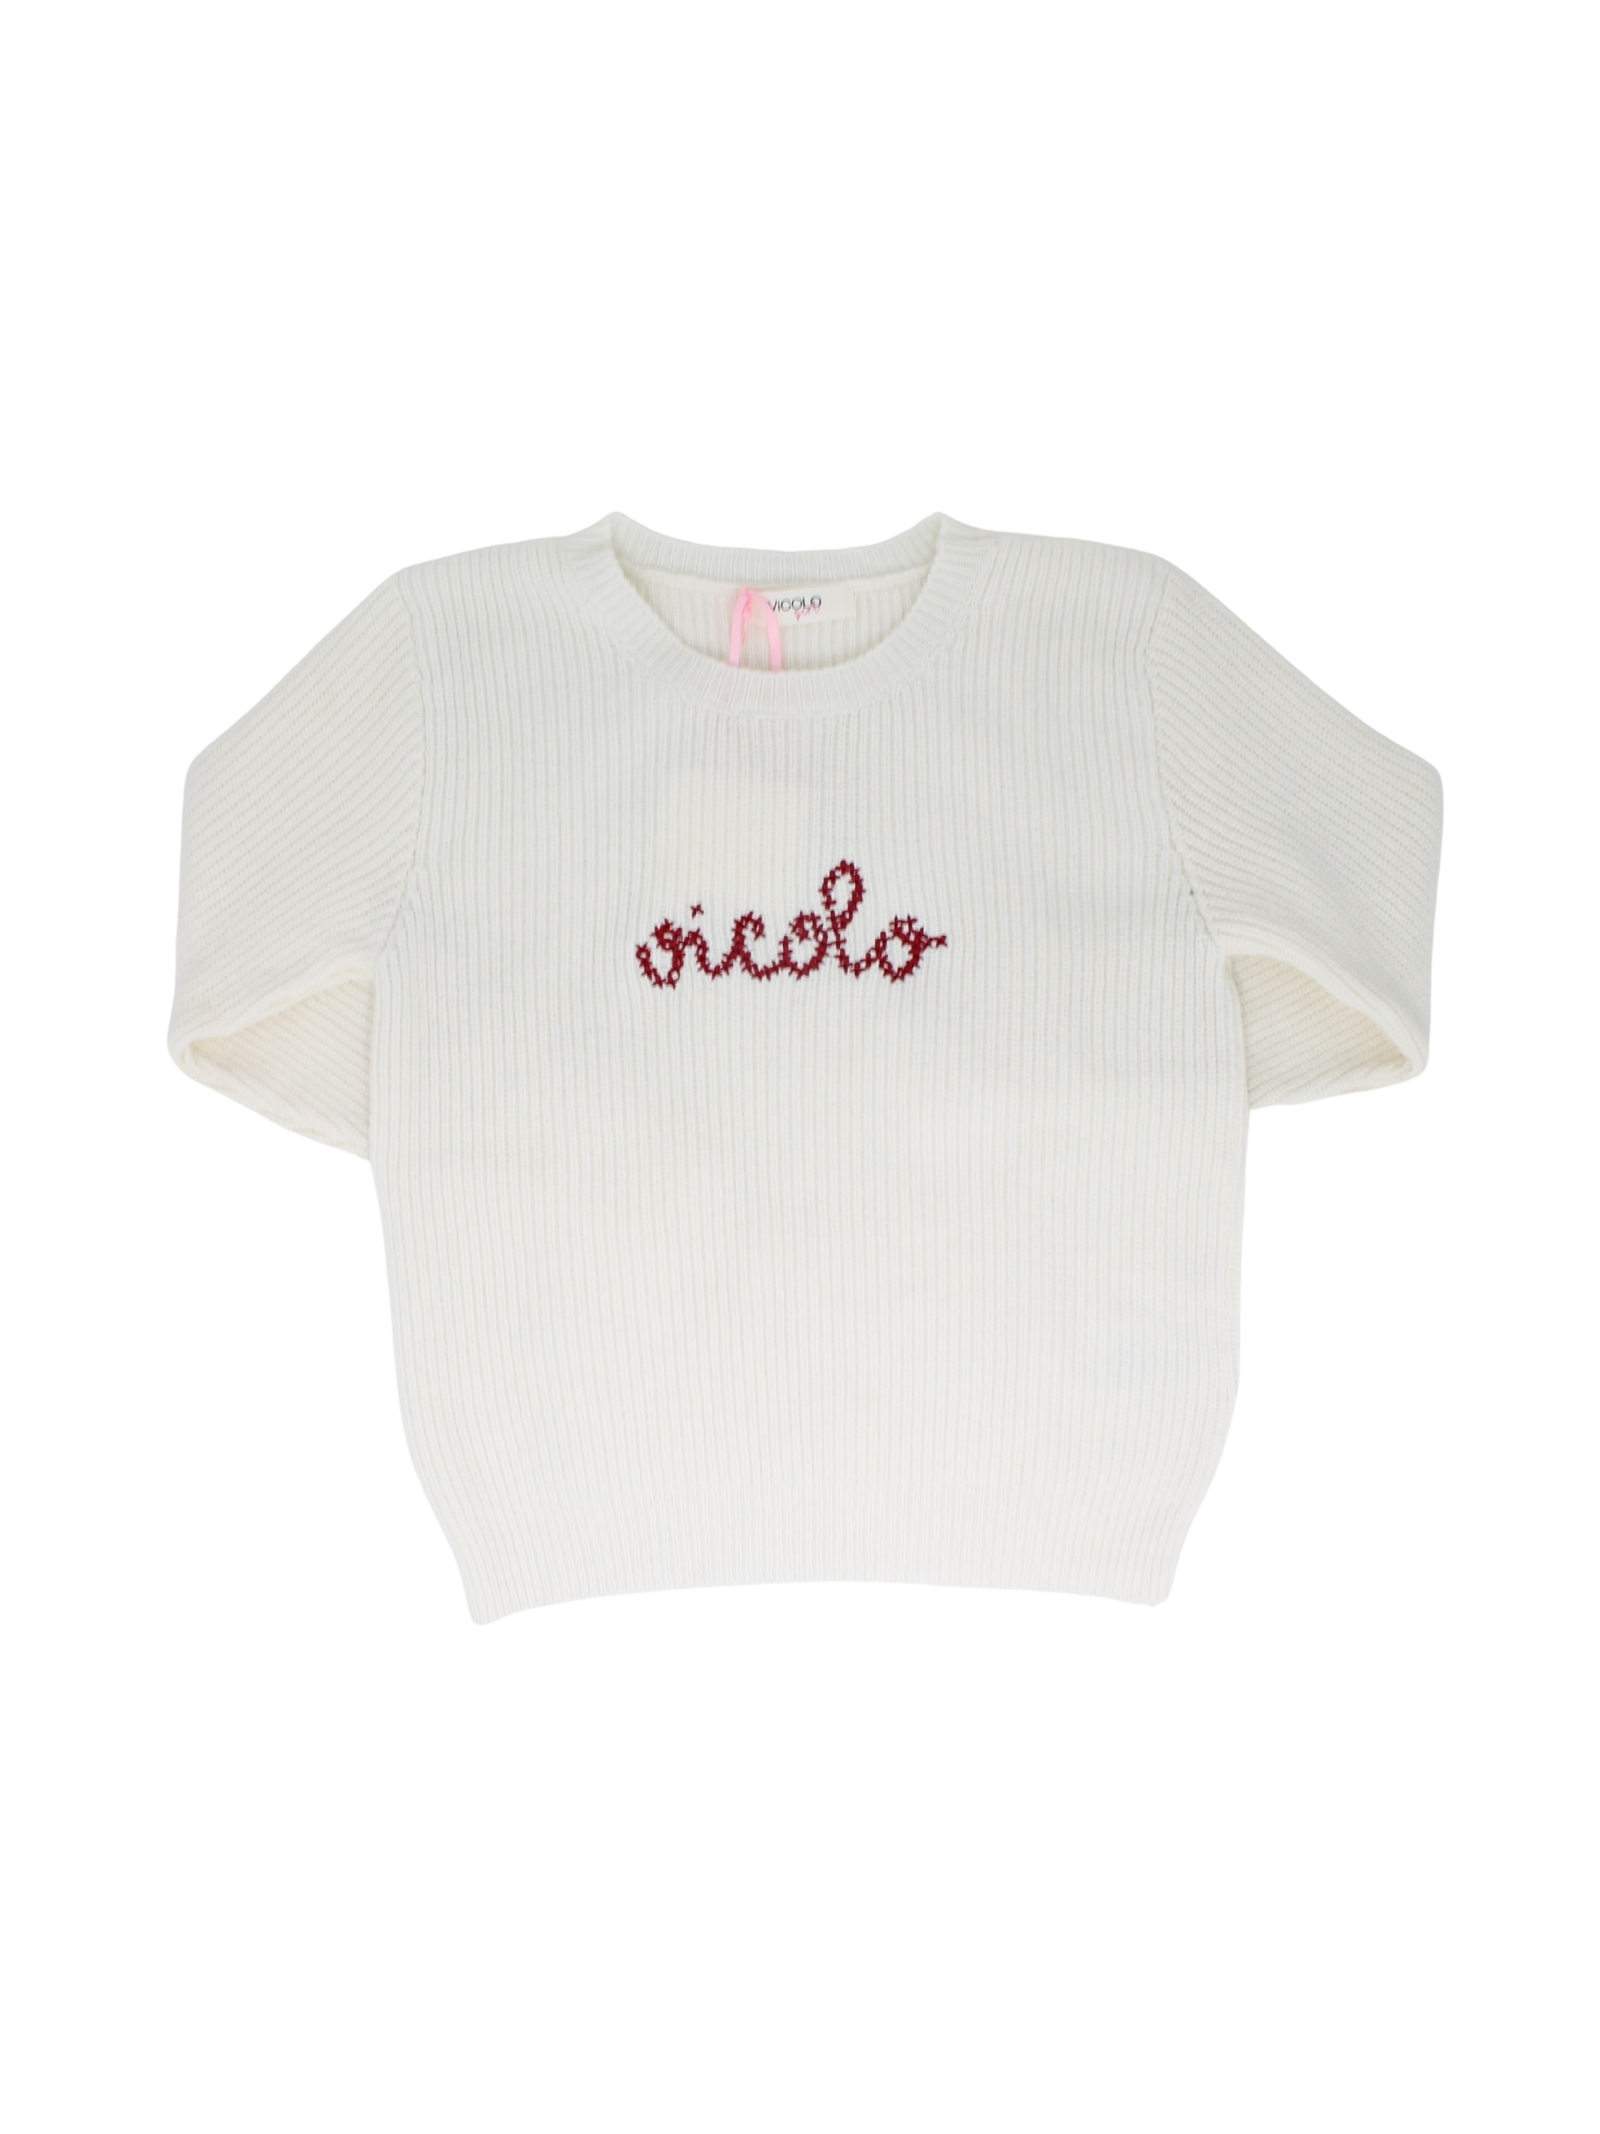 Cashmere sweater for girls VICOLO KIDS |  | 3141W0730PANNA